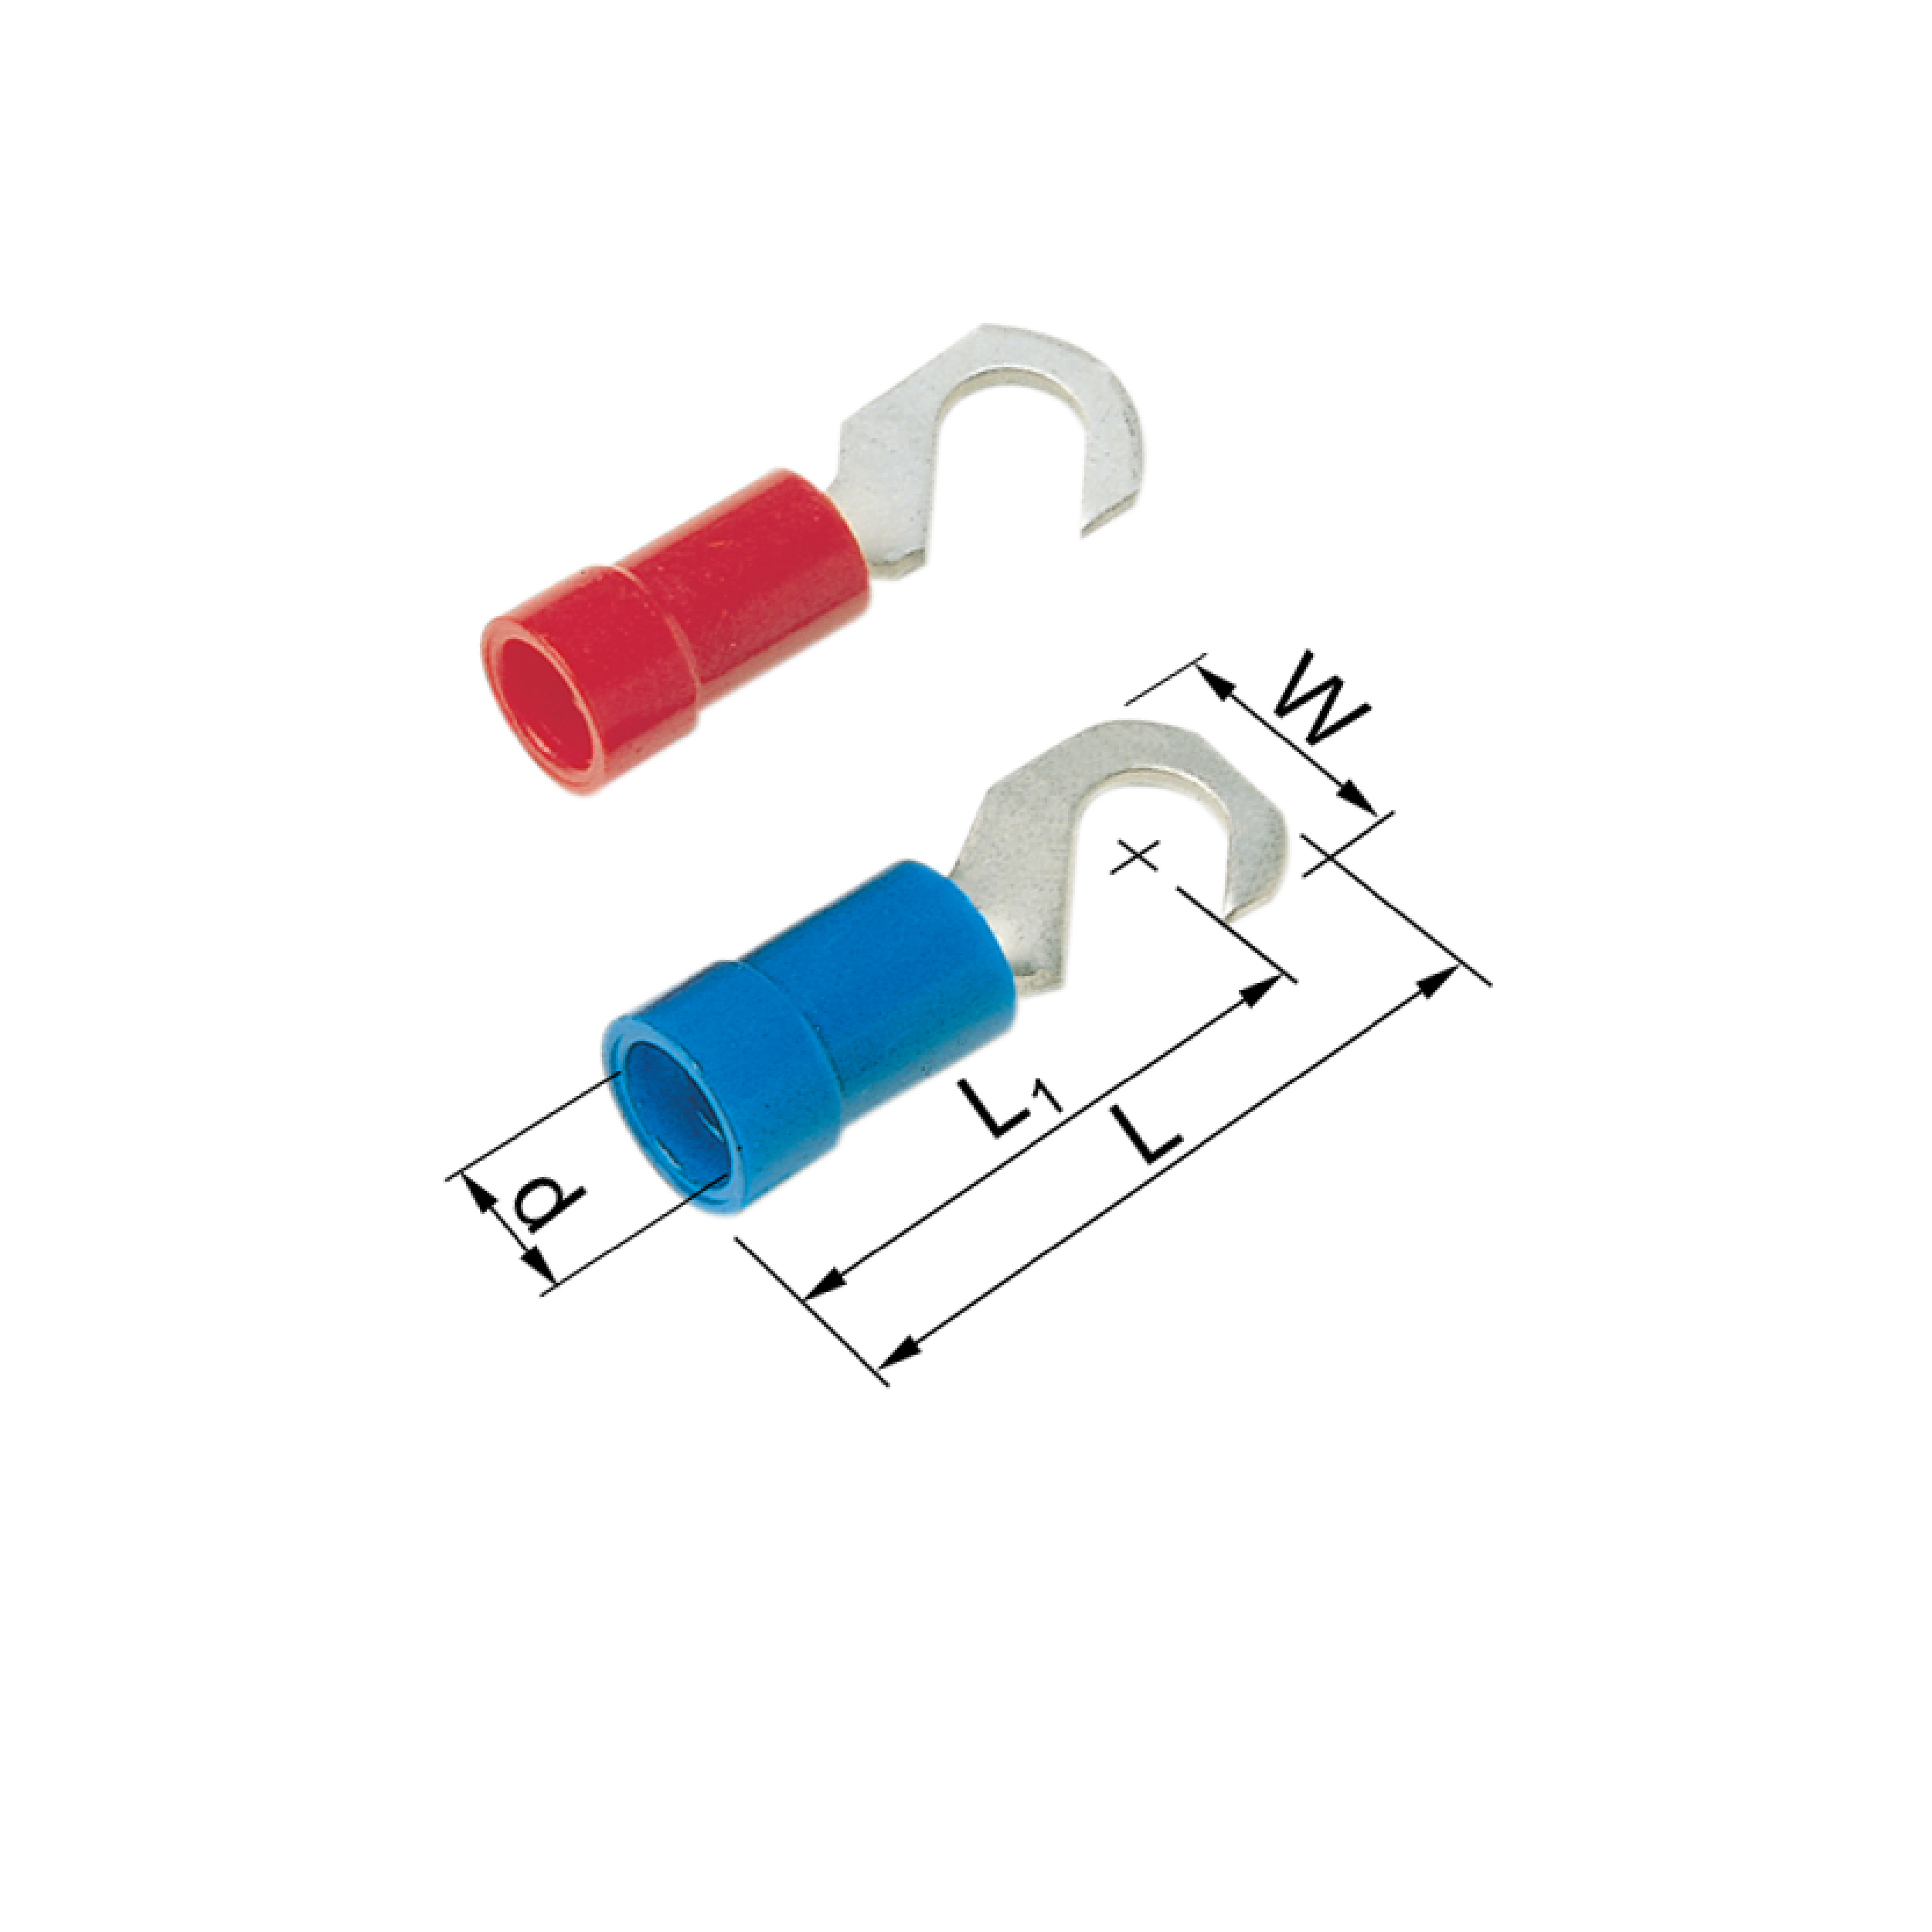 Elpress Pre Insulated Hook Terminals 0.5-2.5mm² Halogen Free